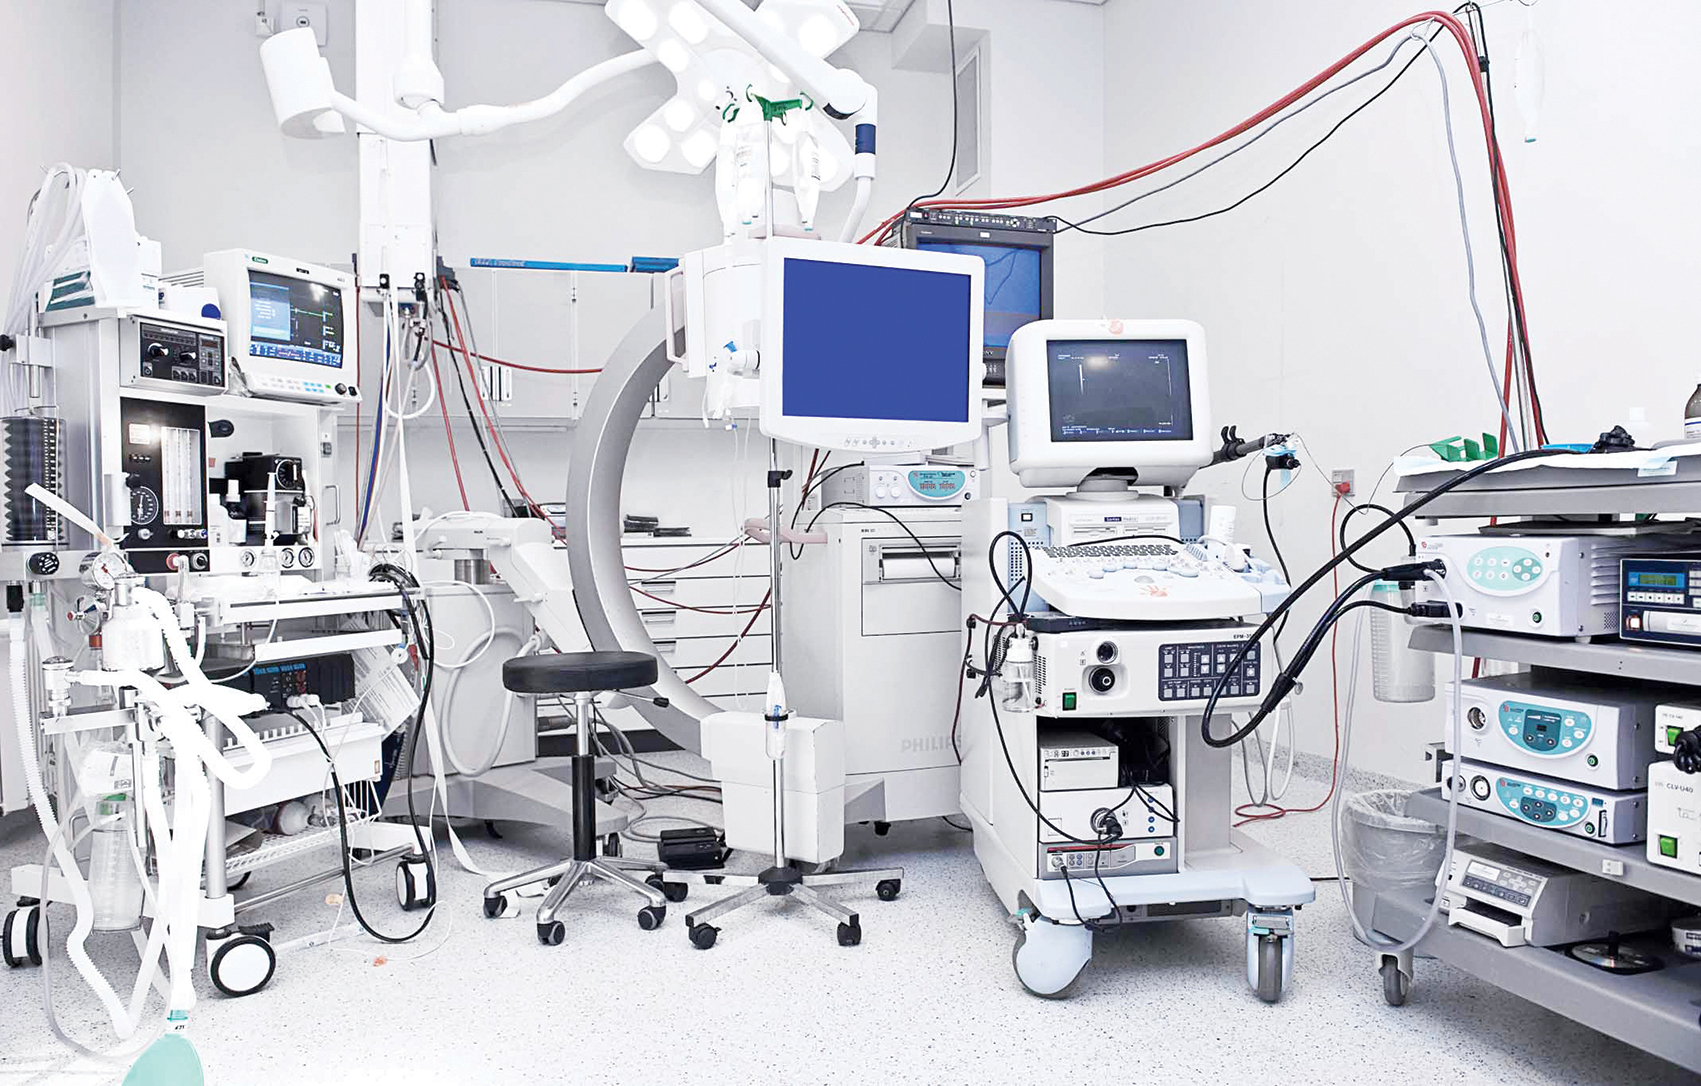 Refurbished Medical Devices - Questions to Ask